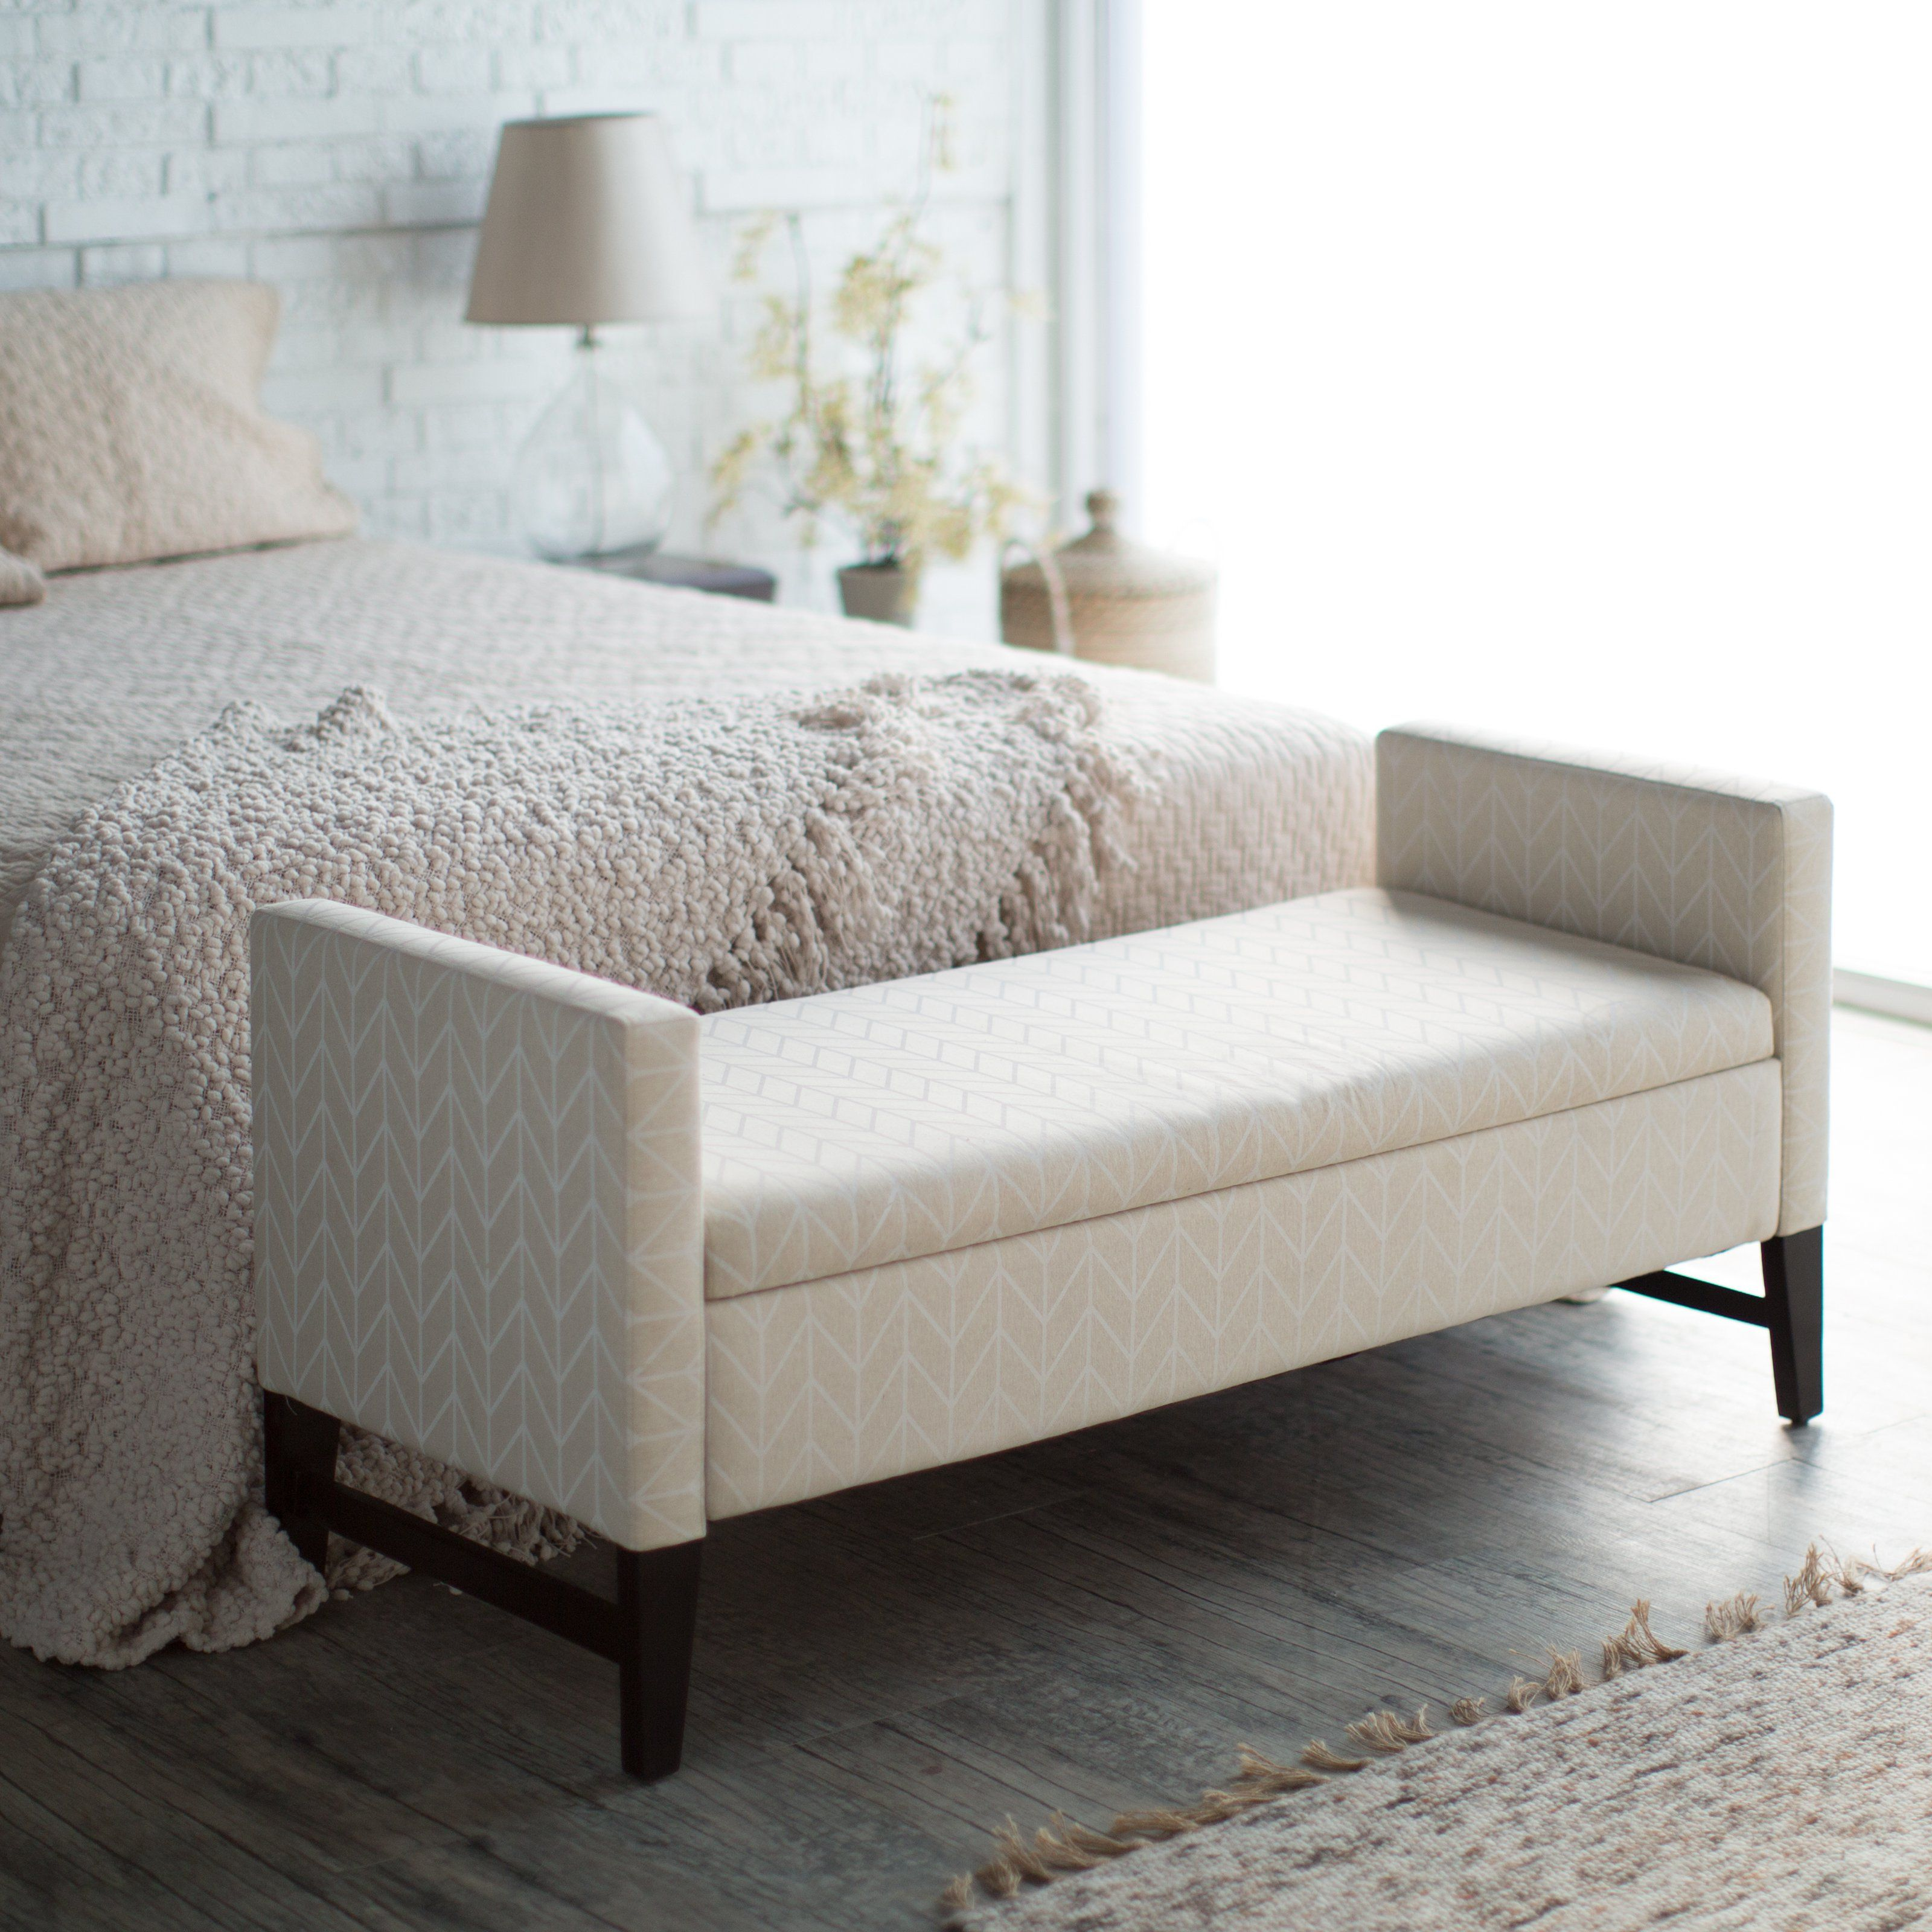 Terrific Favored White Upholstery Modern Bedroom Benches On Grey Wood Machost Co Dining Chair Design Ideas Machostcouk